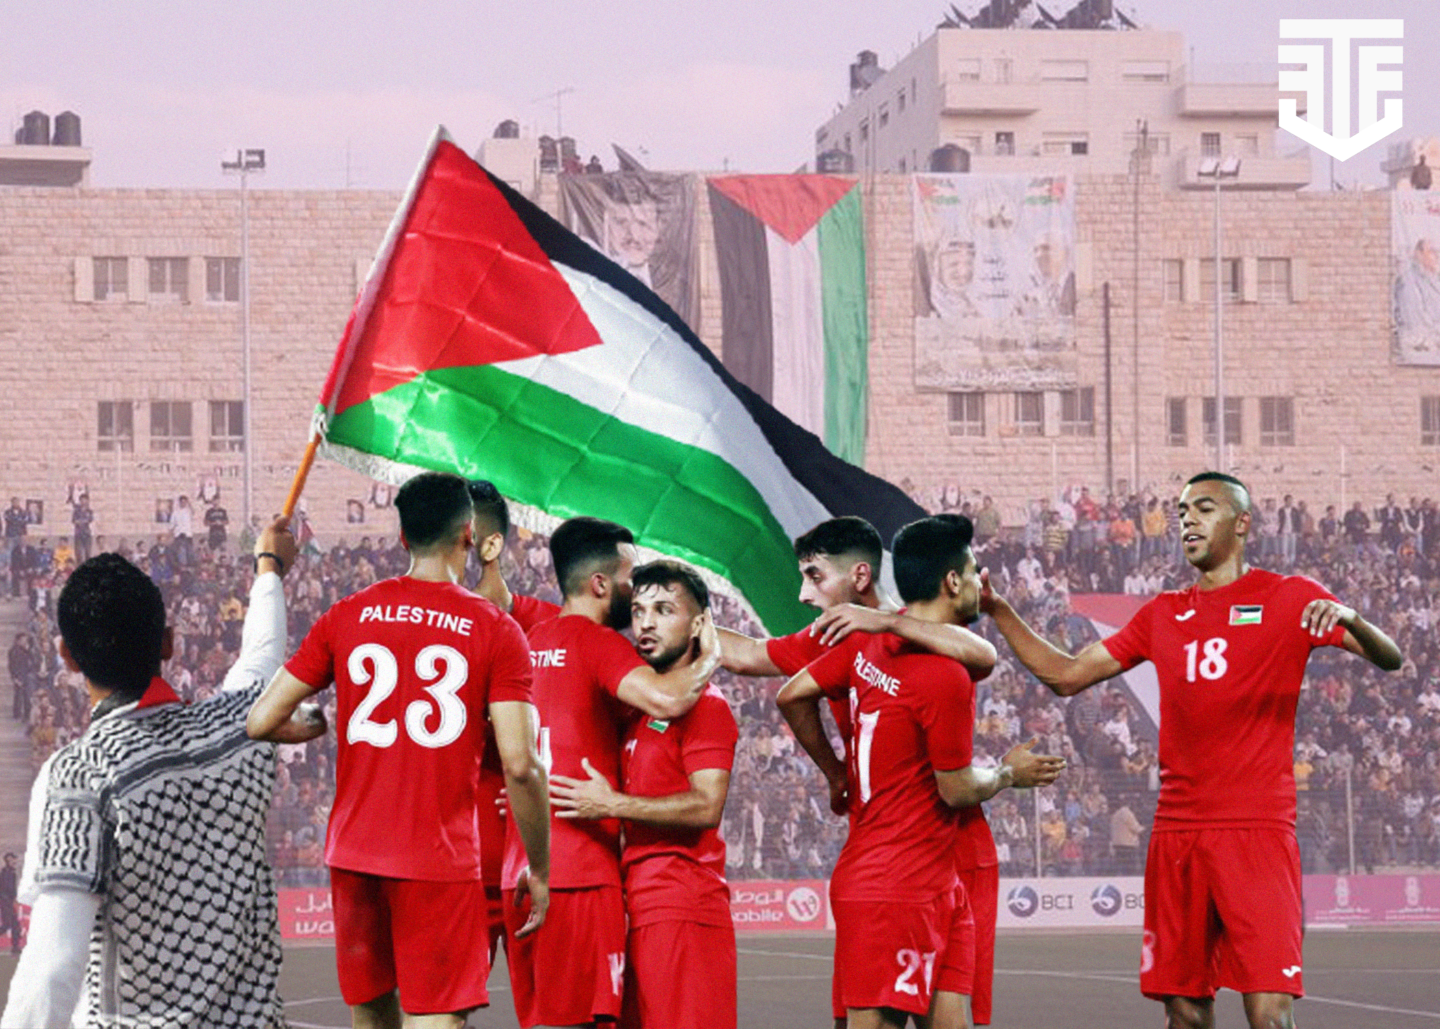 Football in Palestine: power, conflict, and hope